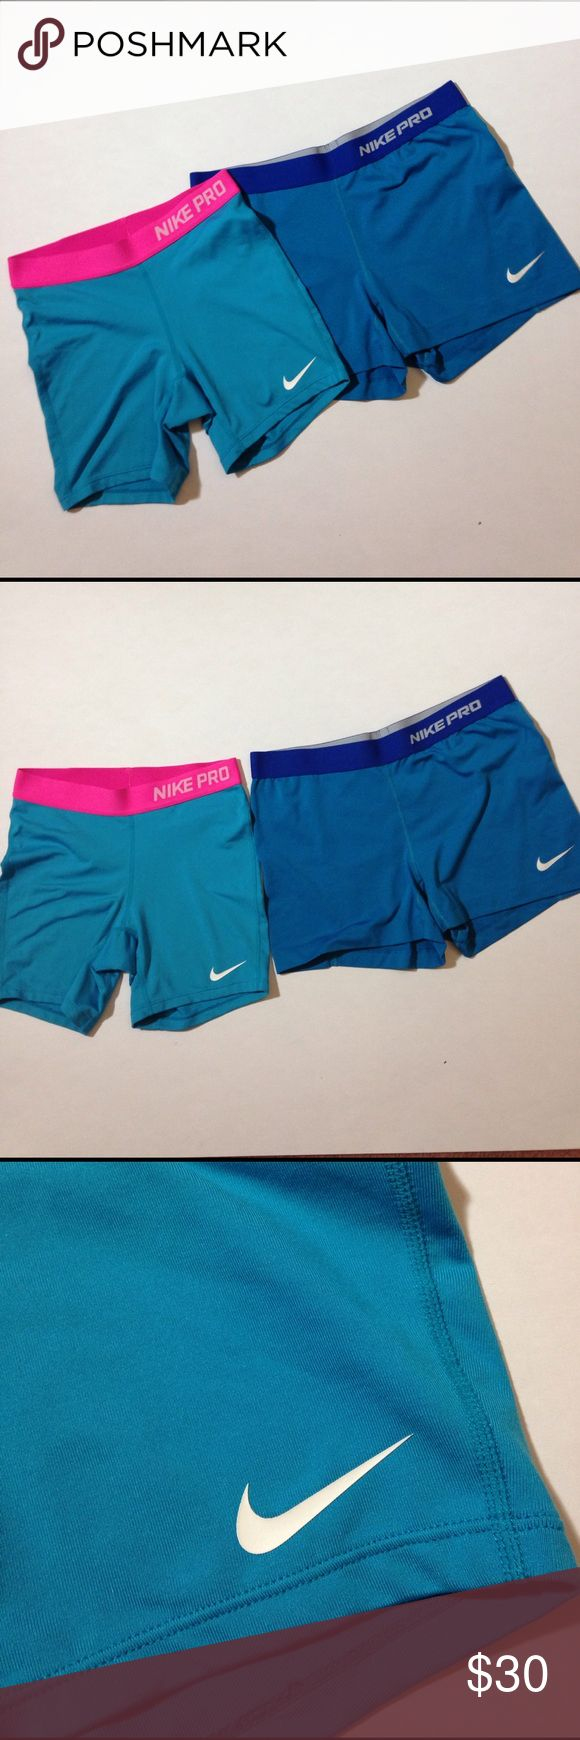 "1 HR⚡Bundle 2 Nike Pro shorts Bundle of 2 Nike compression shorts, the pink band is size XL but run smaller and is a longer style. The band measures 12.25"" across and from top of band down measures approximately 12.5"" long. The blue band ones are size XL and are shorter and the waist from side to side measures approximately 14.5"" across and from band down measures approximately 12"" long. Nike swoosh has some cracking on blue band pair. Nike Shorts"